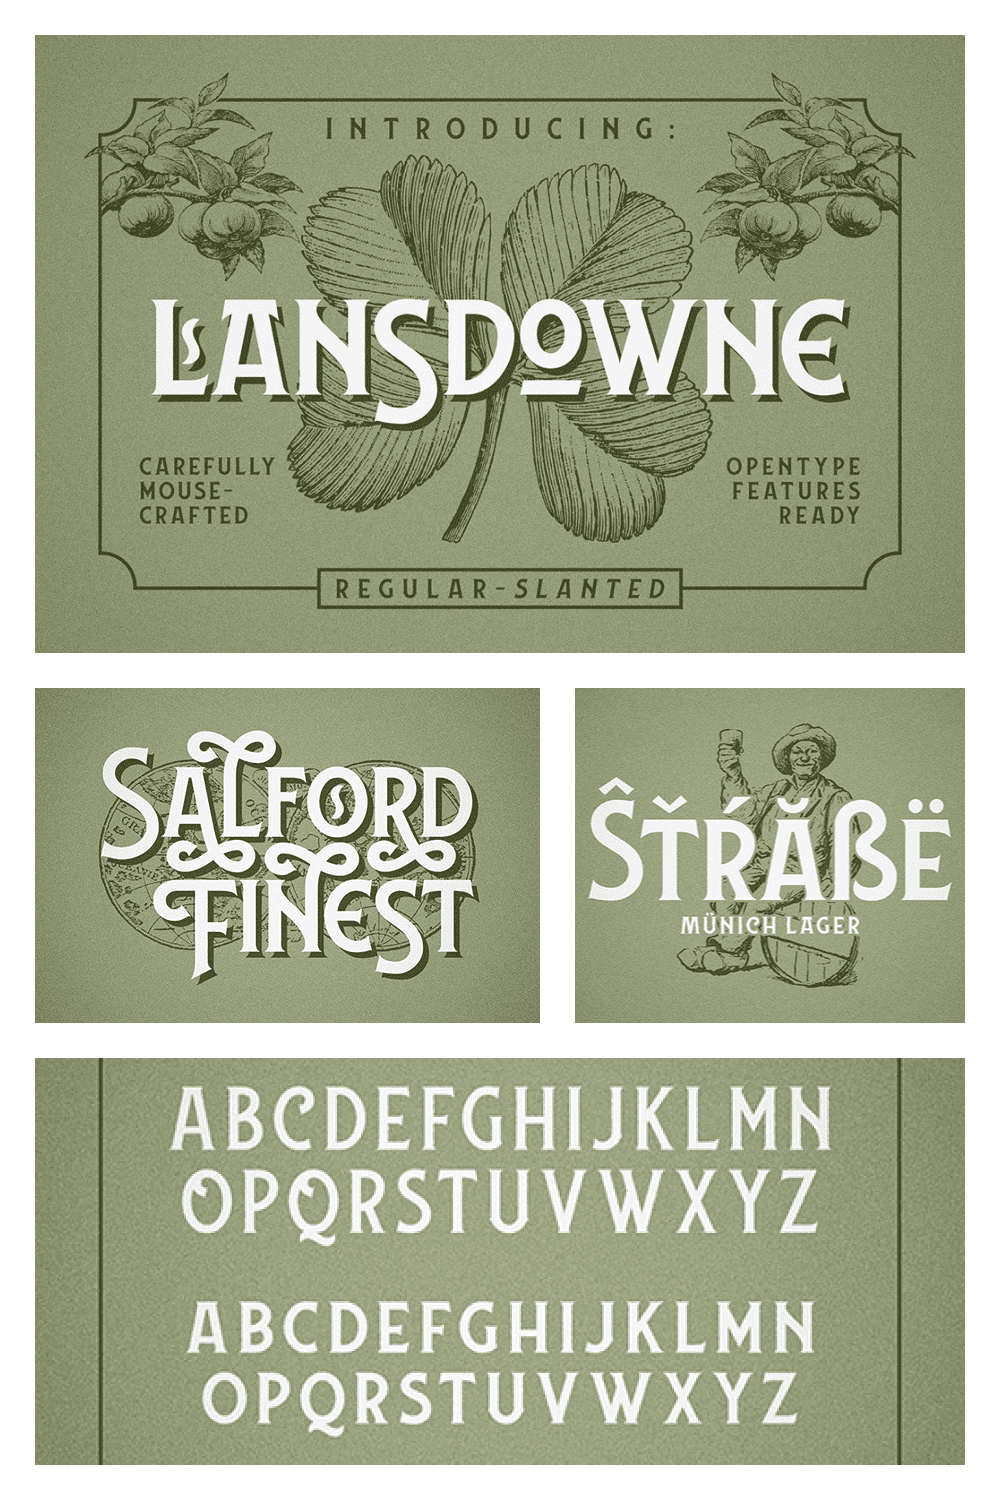 It's the perfect blend between clean and vintage themed type work, inspired by the old advertisement letters.